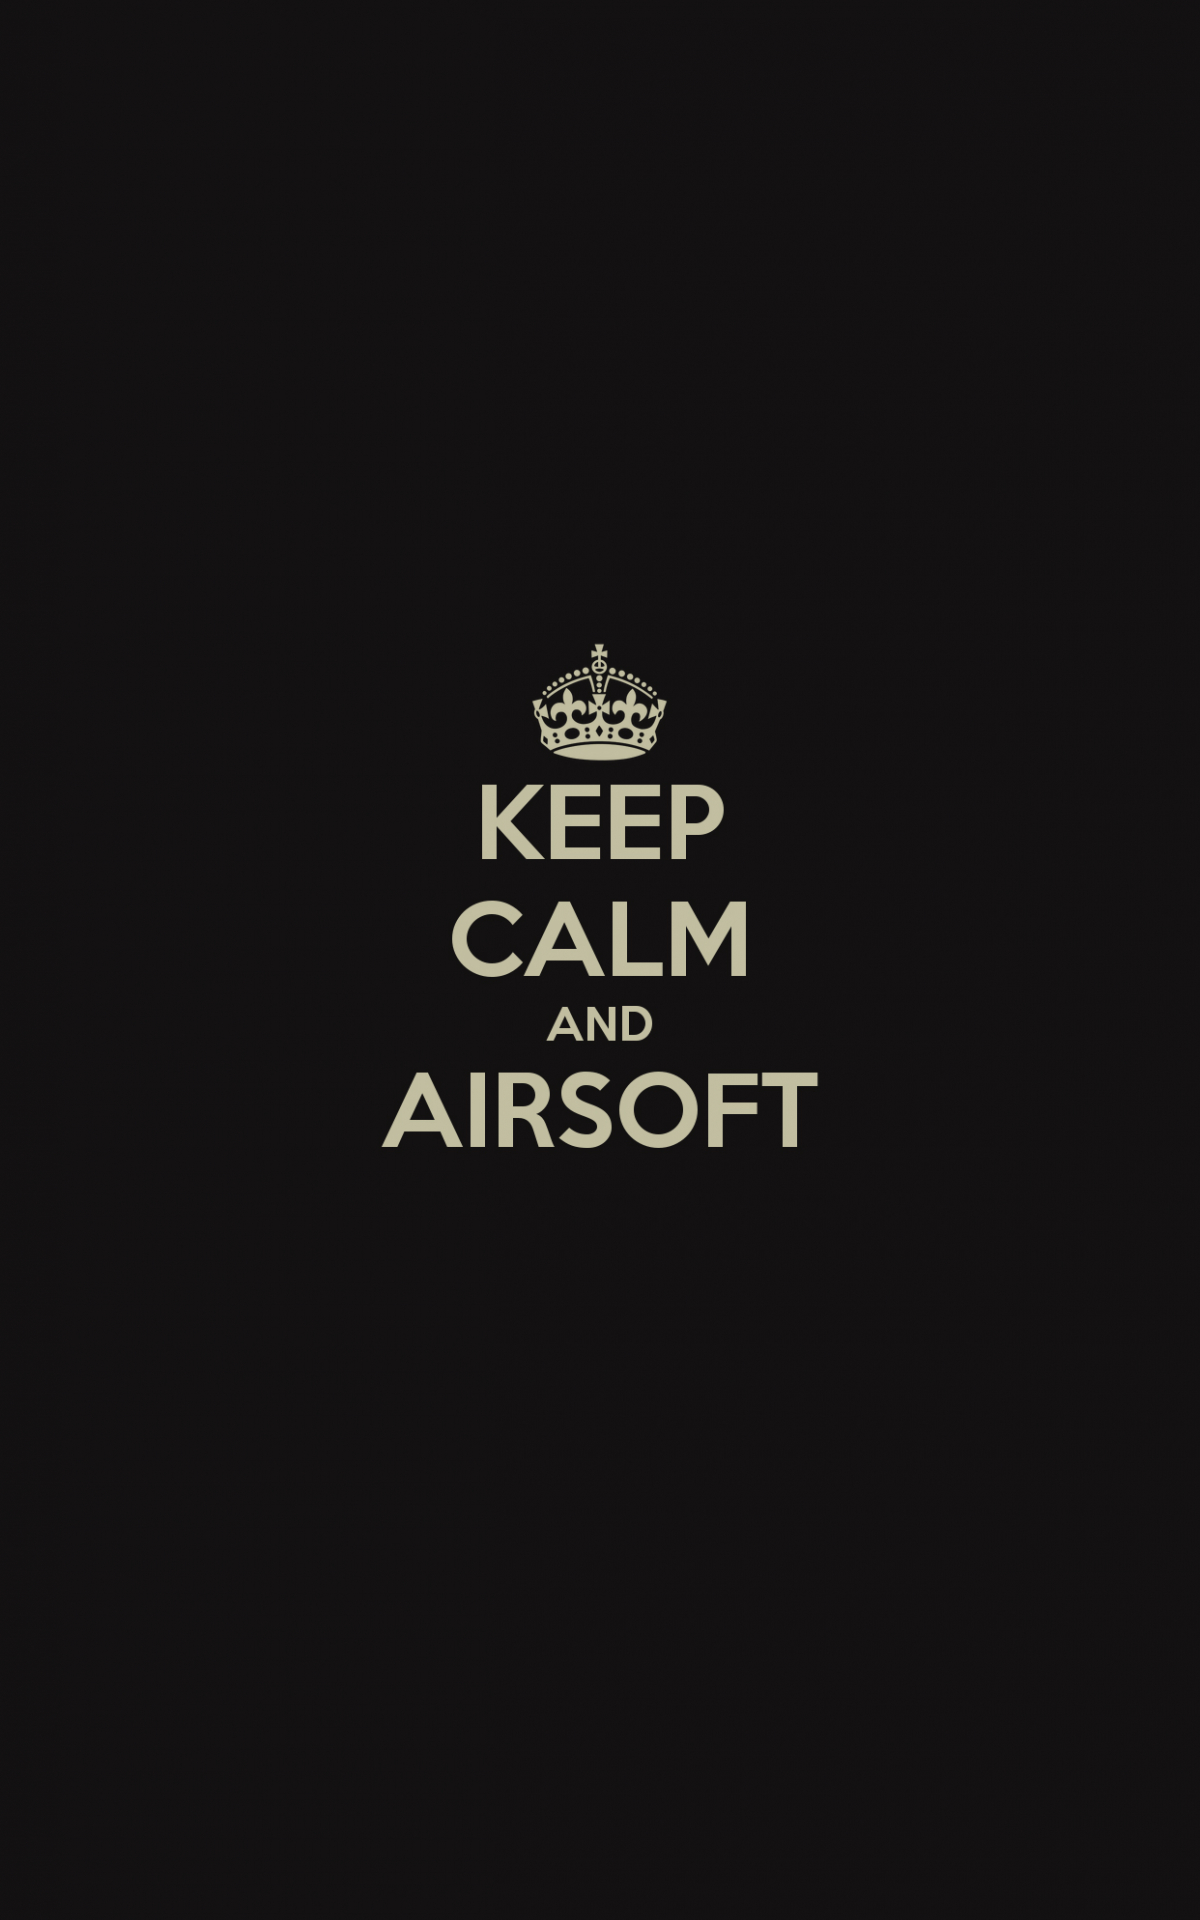 Free Download Keep Calm And Airsoft Wallpaper For Iphone X 8 7 6